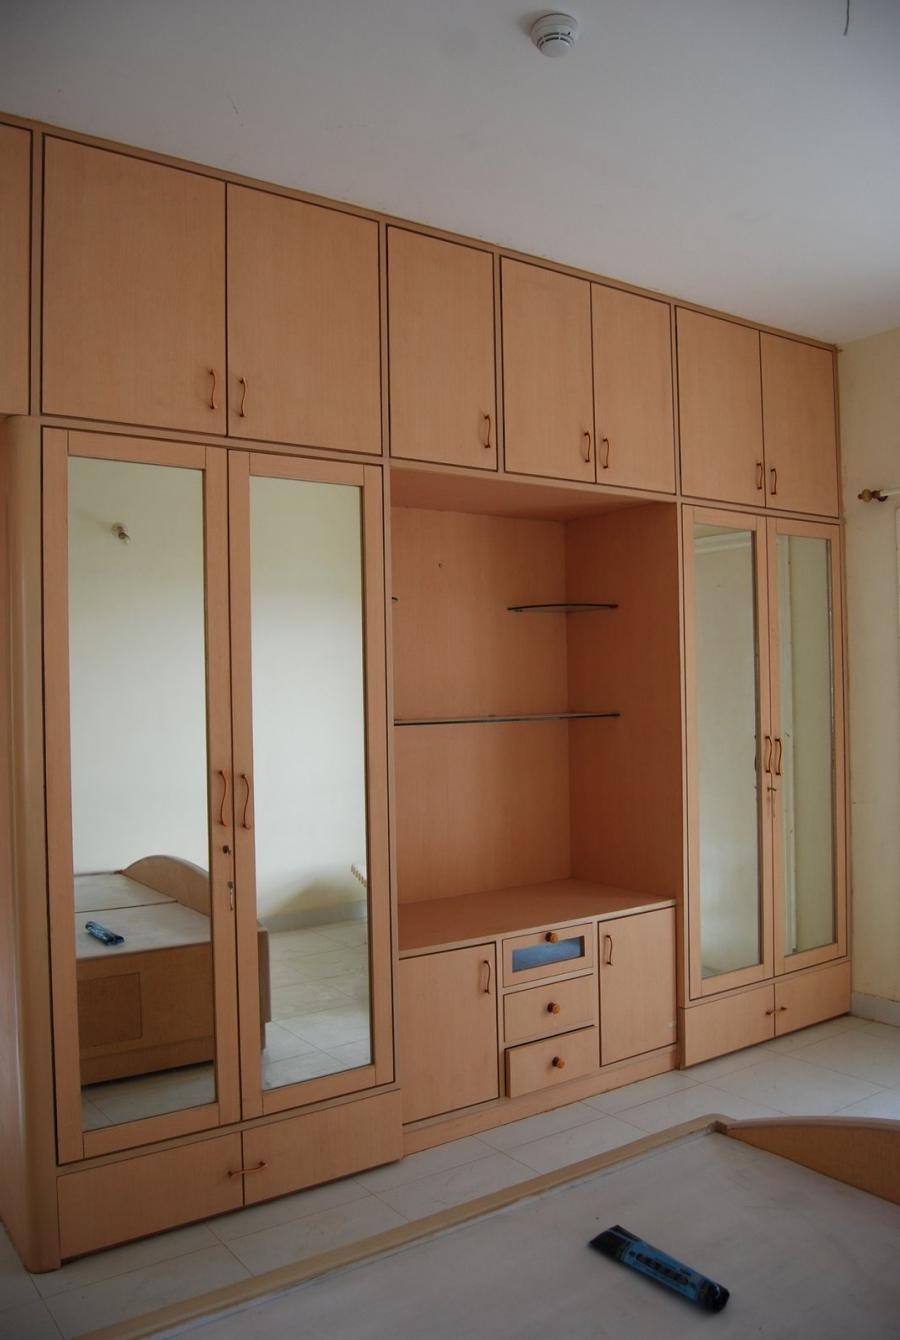 Interior design bedrooms cupboards photos for Bedroom cupboard designs images